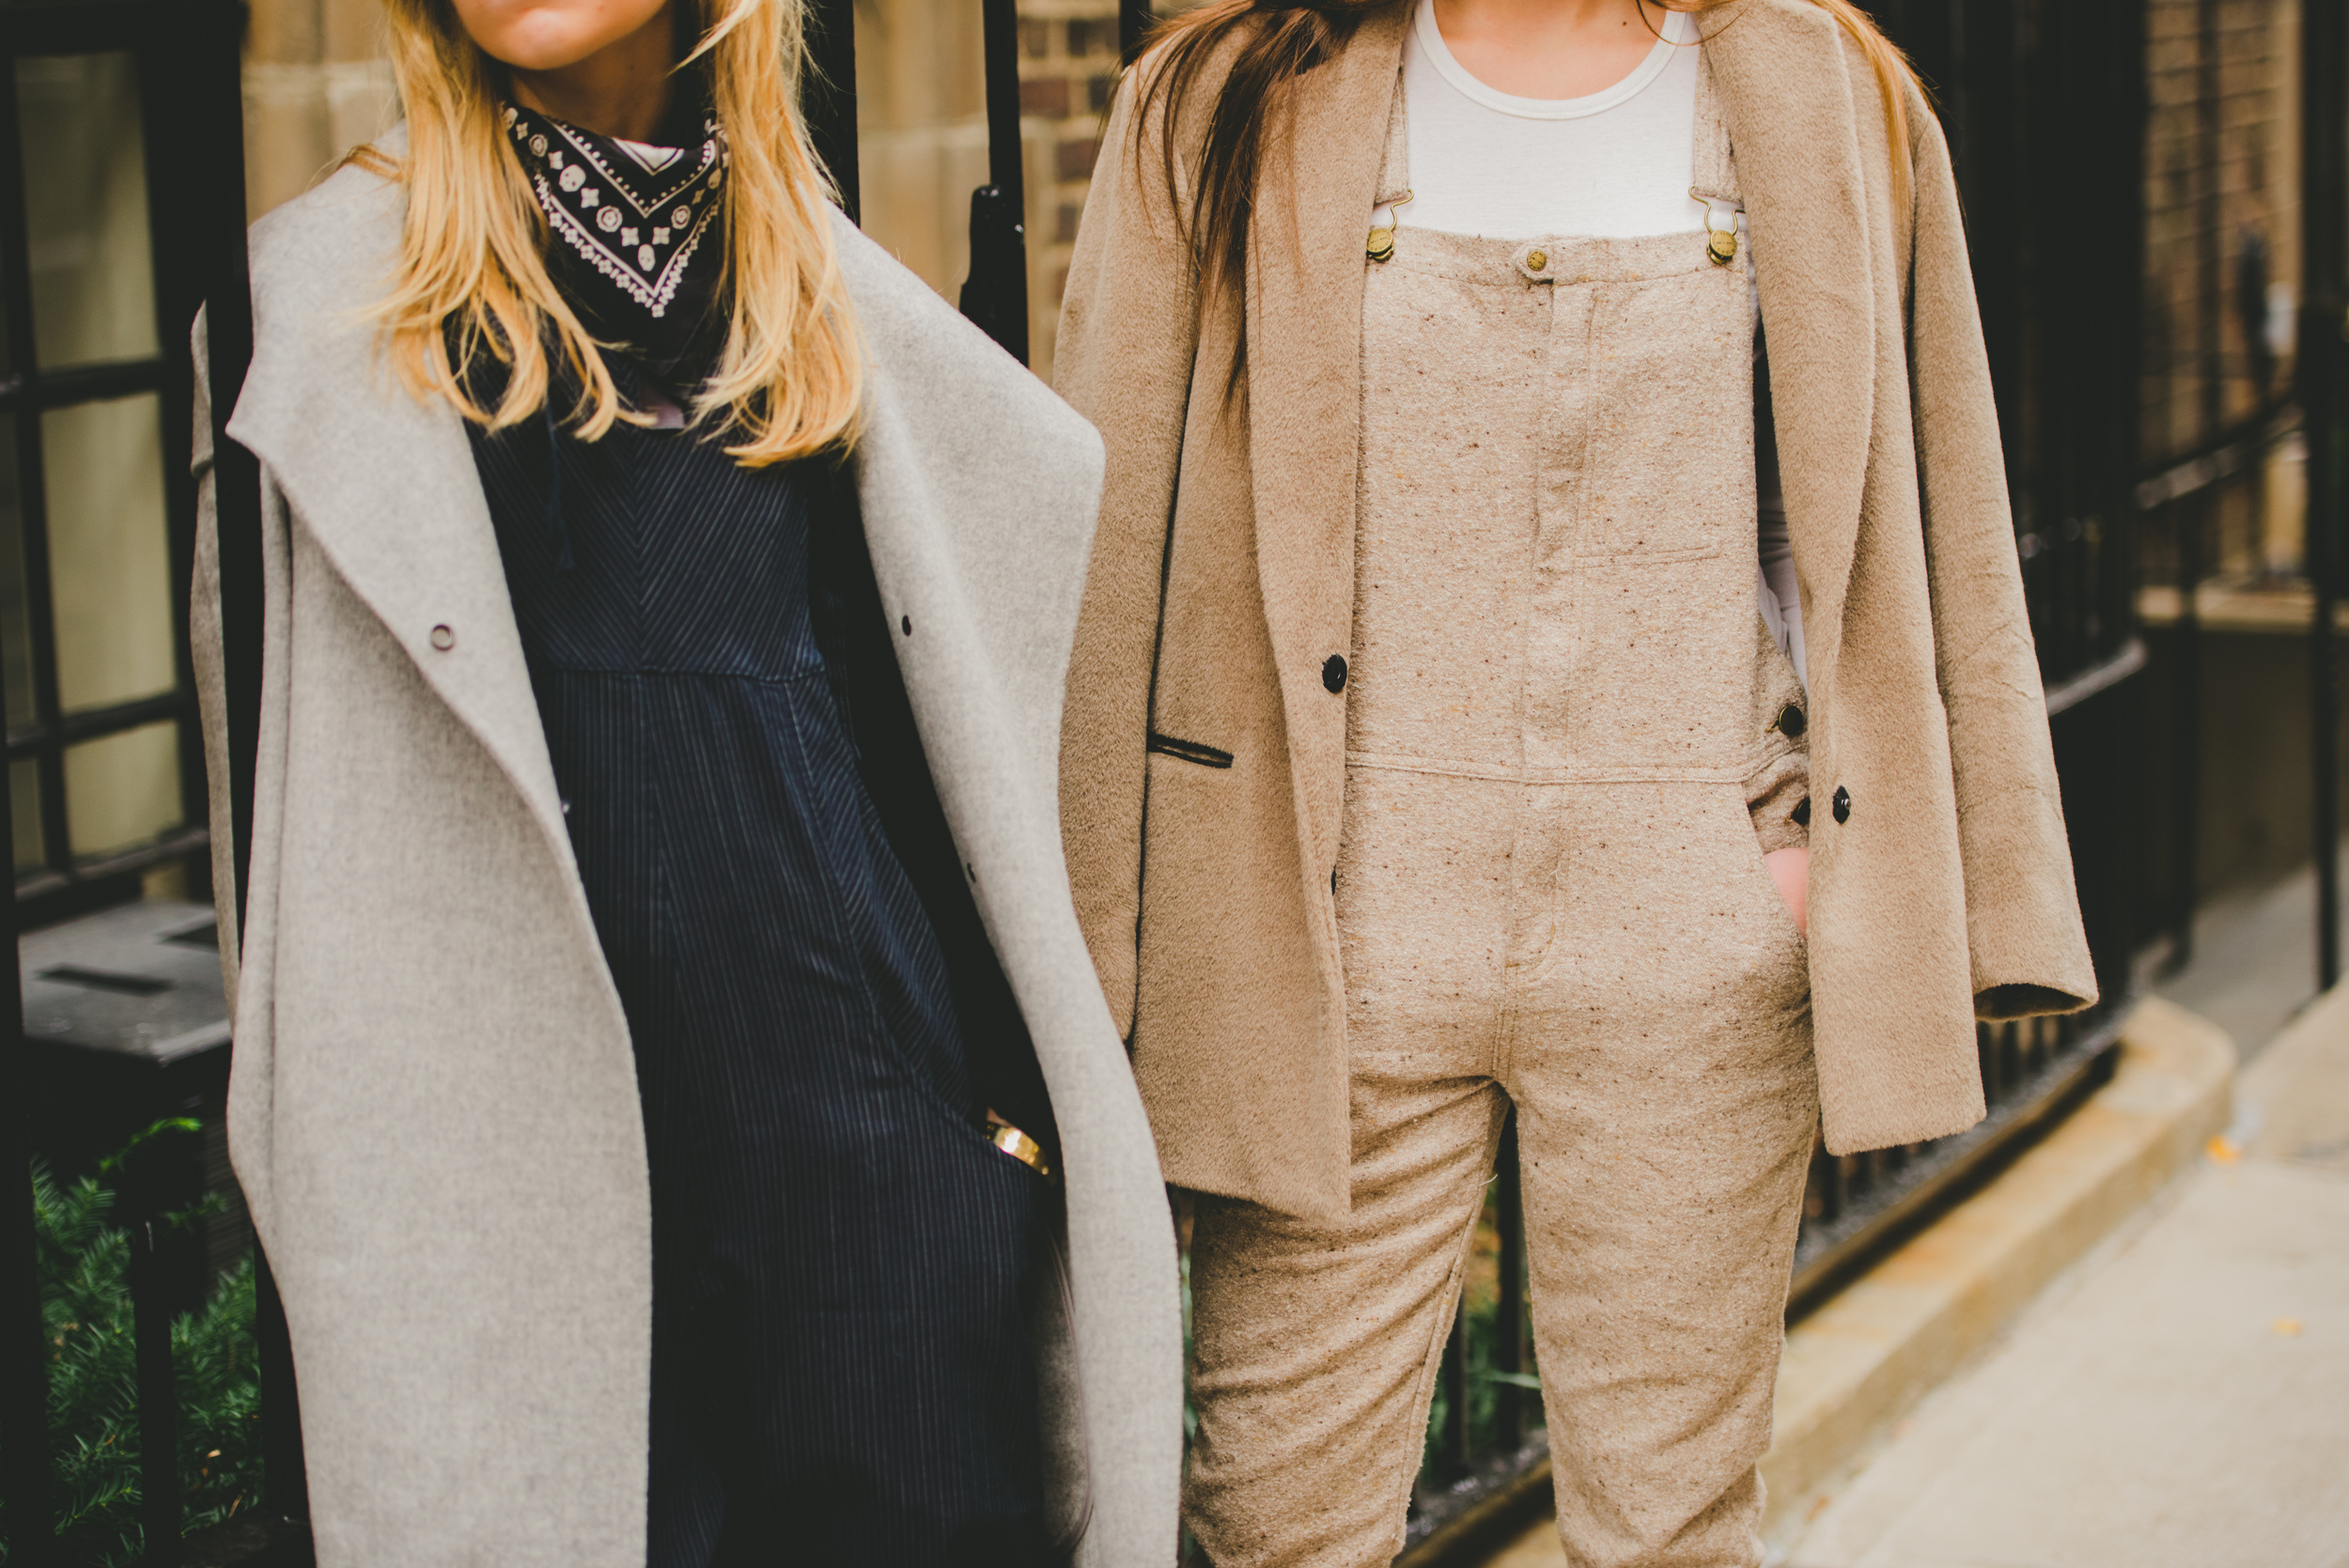 NYC Sreet Style Fashion Bloggers Close Up of Overalls